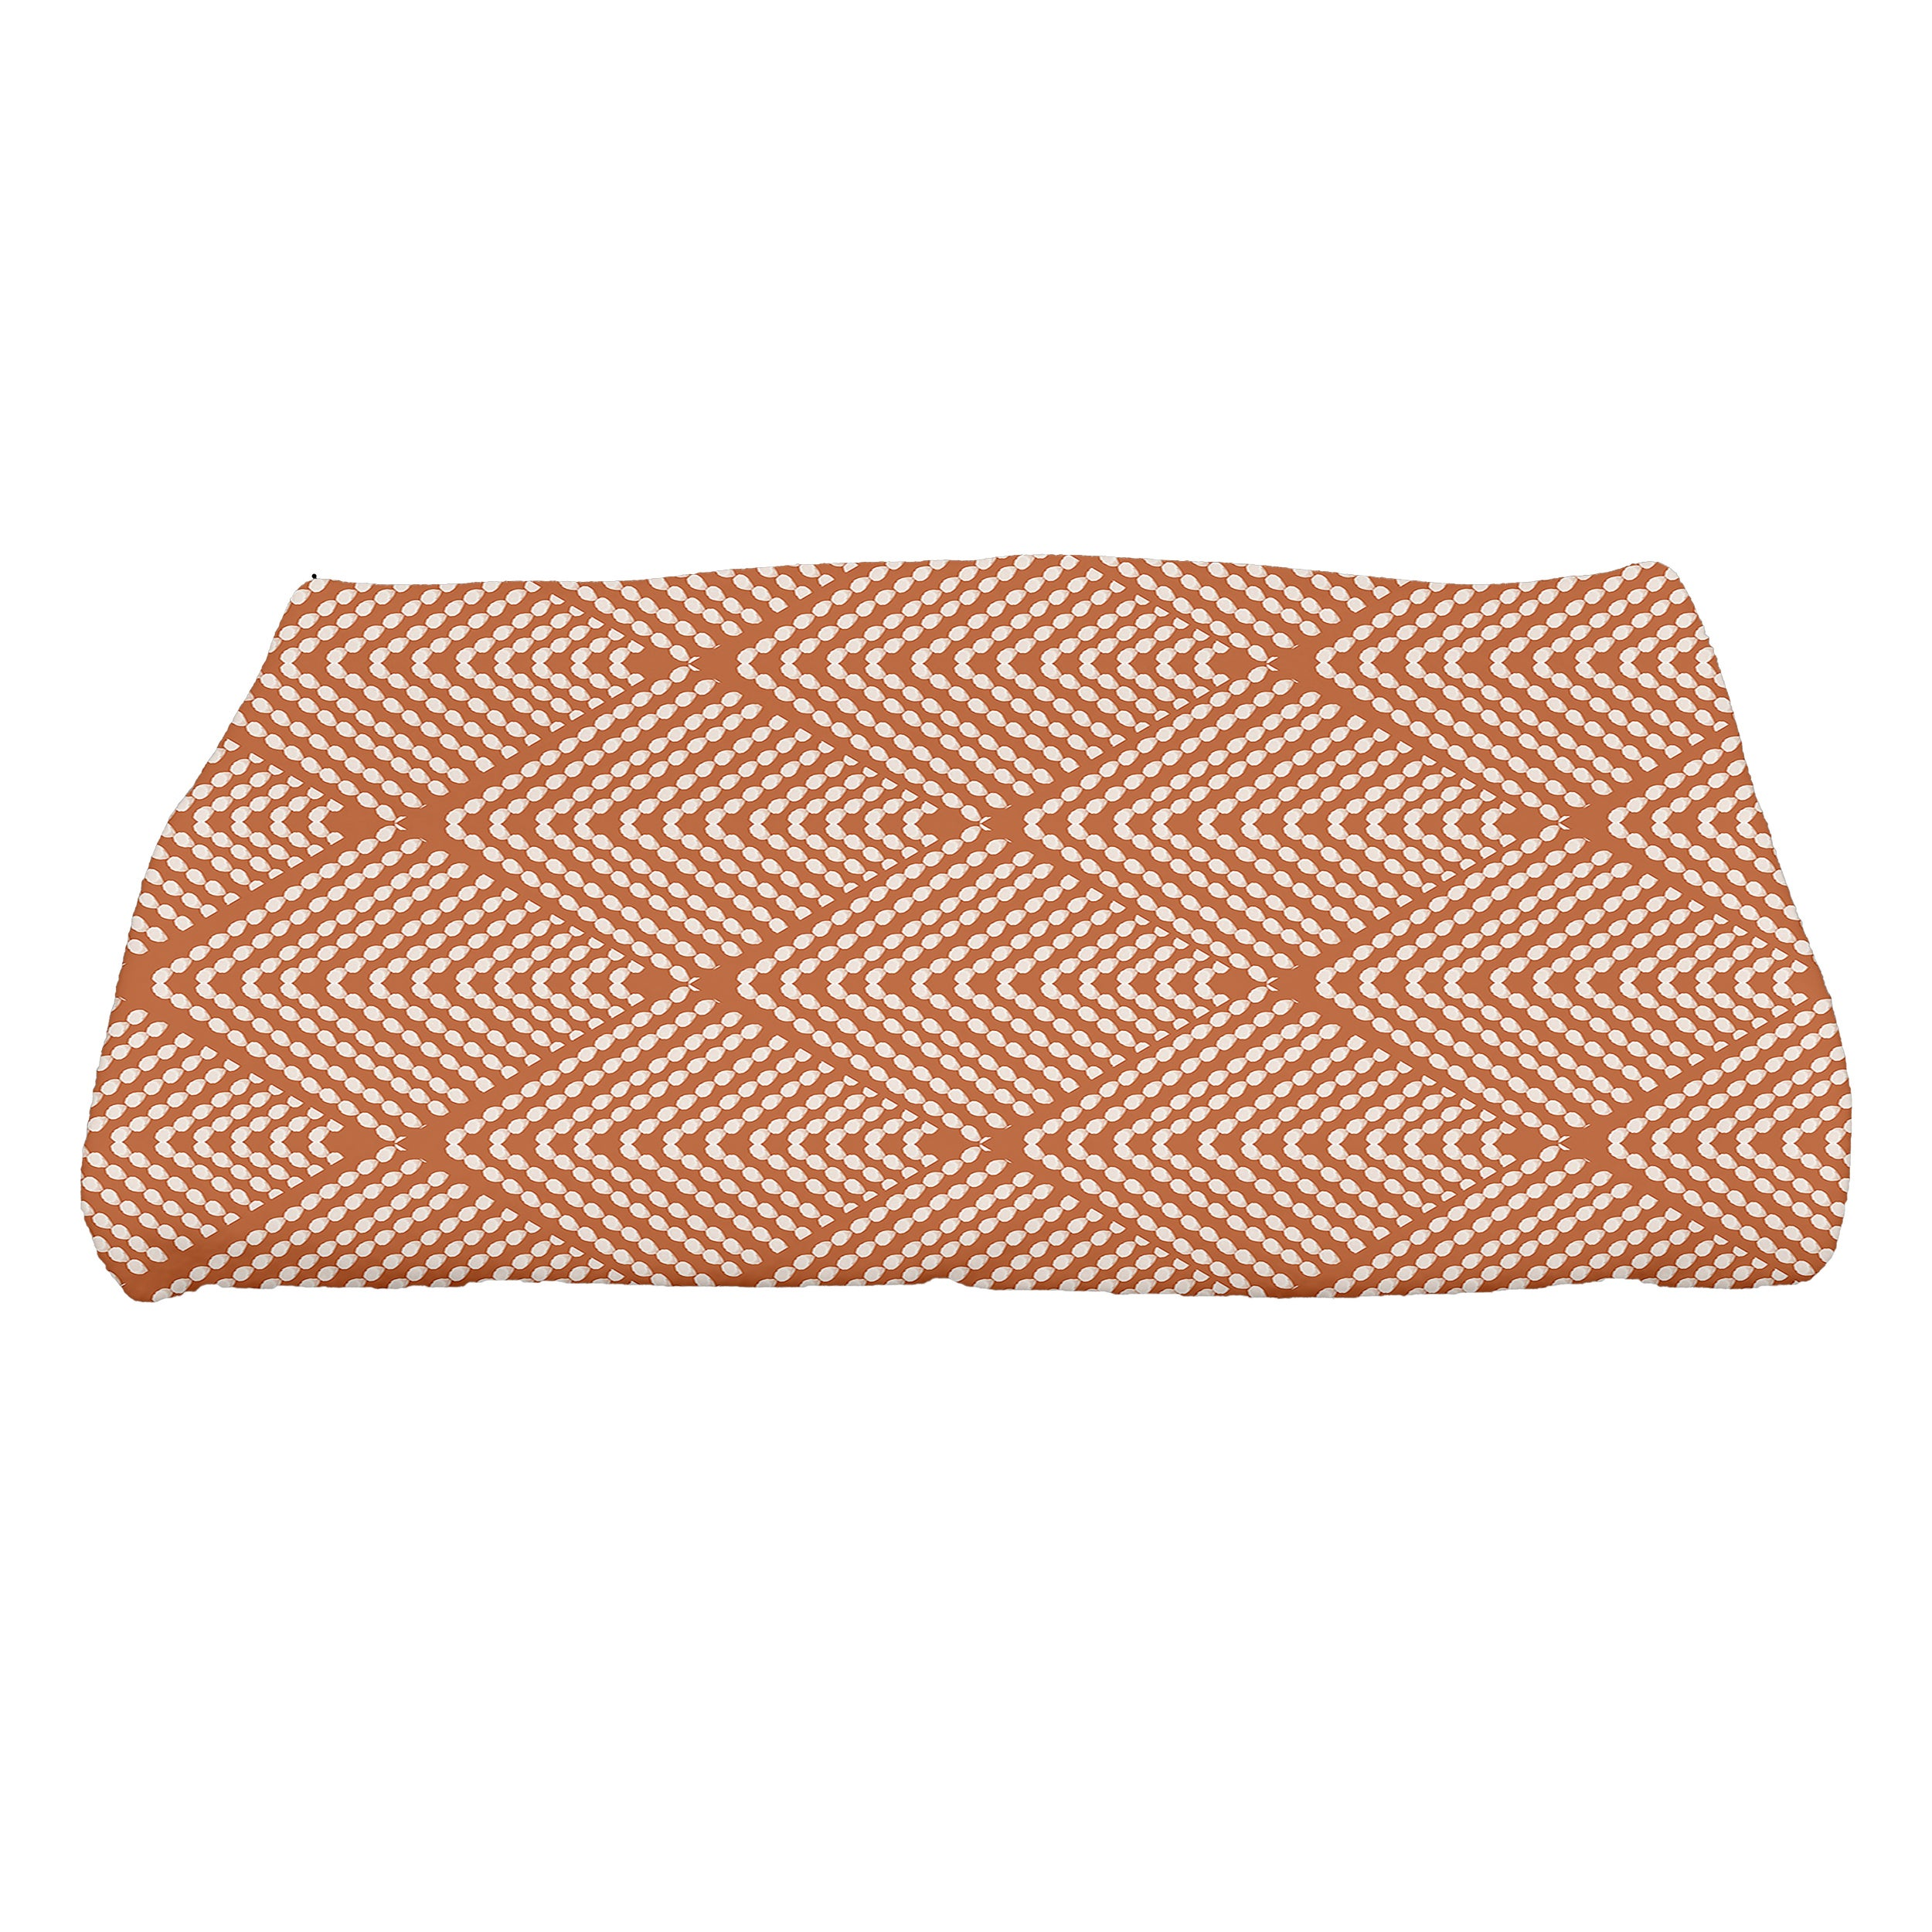 30-x-60-inch-Wenstry-Geometric-Print-Bath-Towel-Orange thumbnail 7